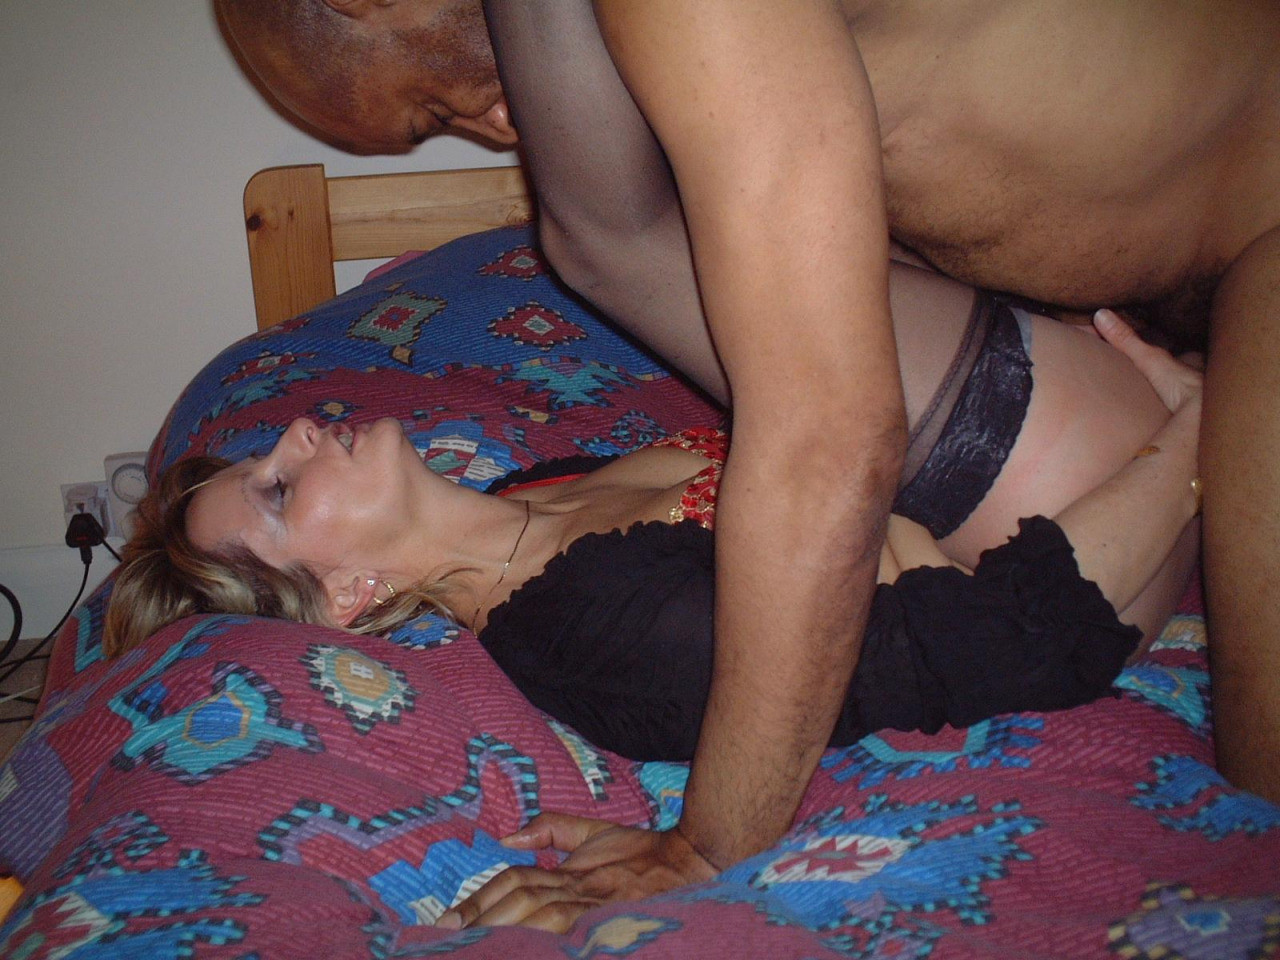 Amateurs Cukloding Porn cuckold and shared anal on yuvutu homemade amateur porn